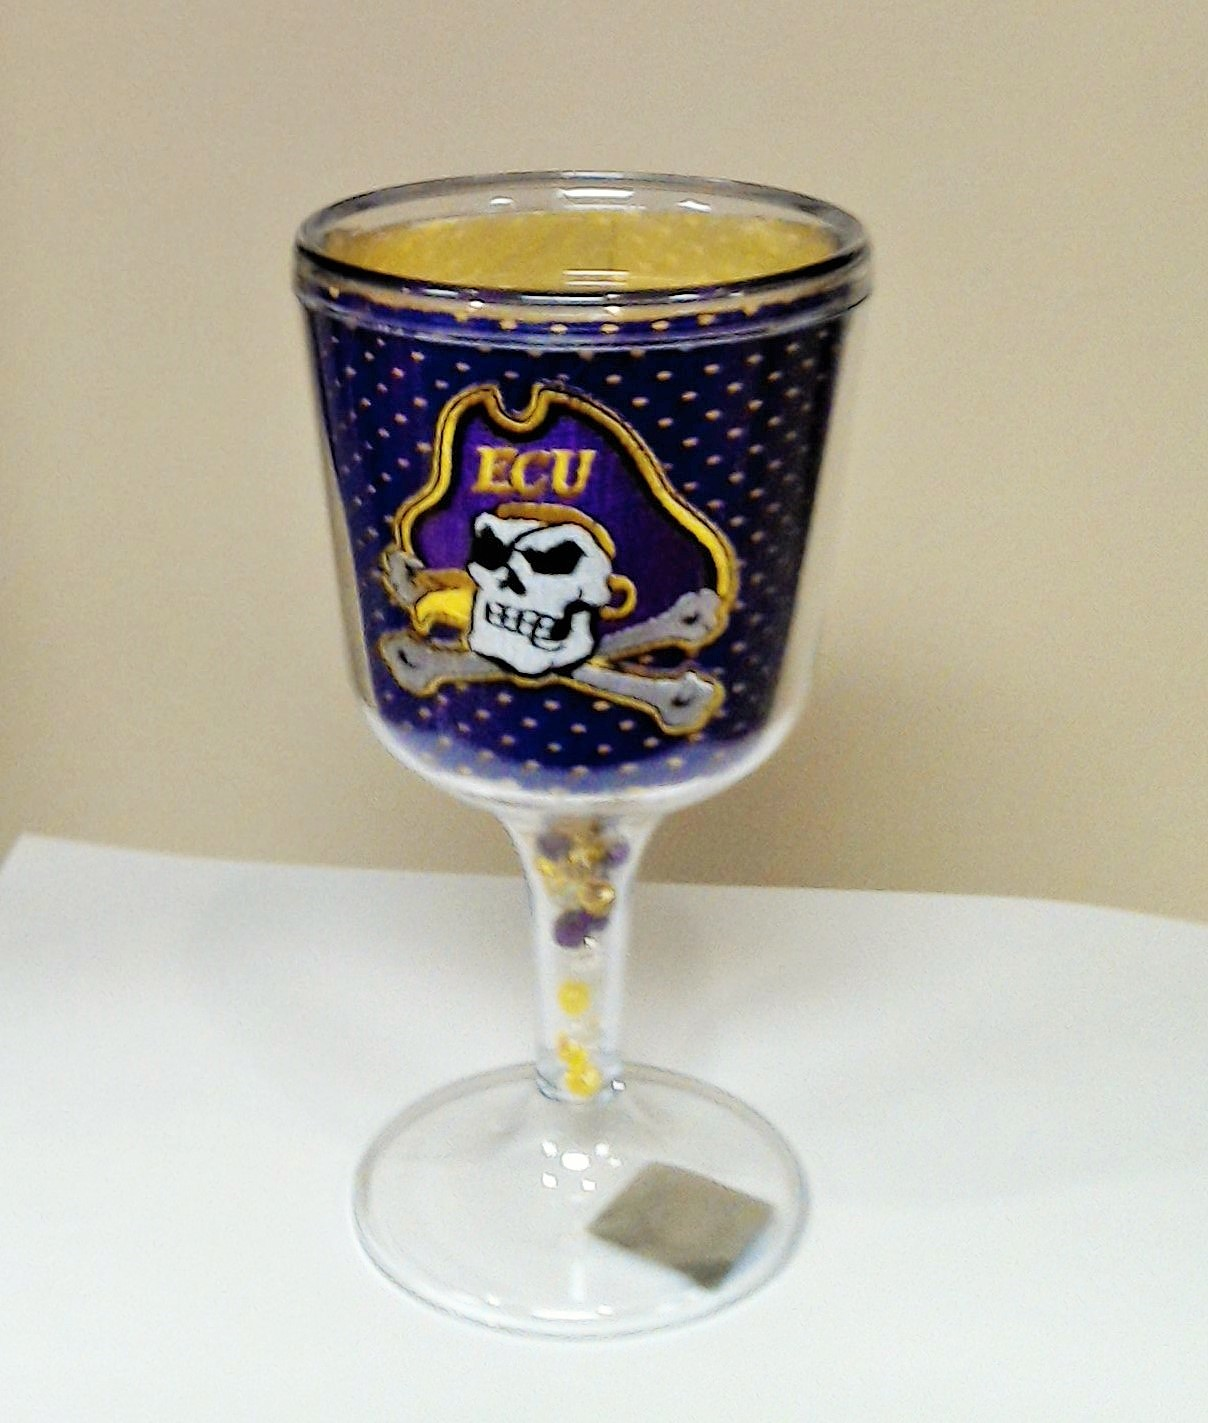 East Carolina Goblet - jersey pattern